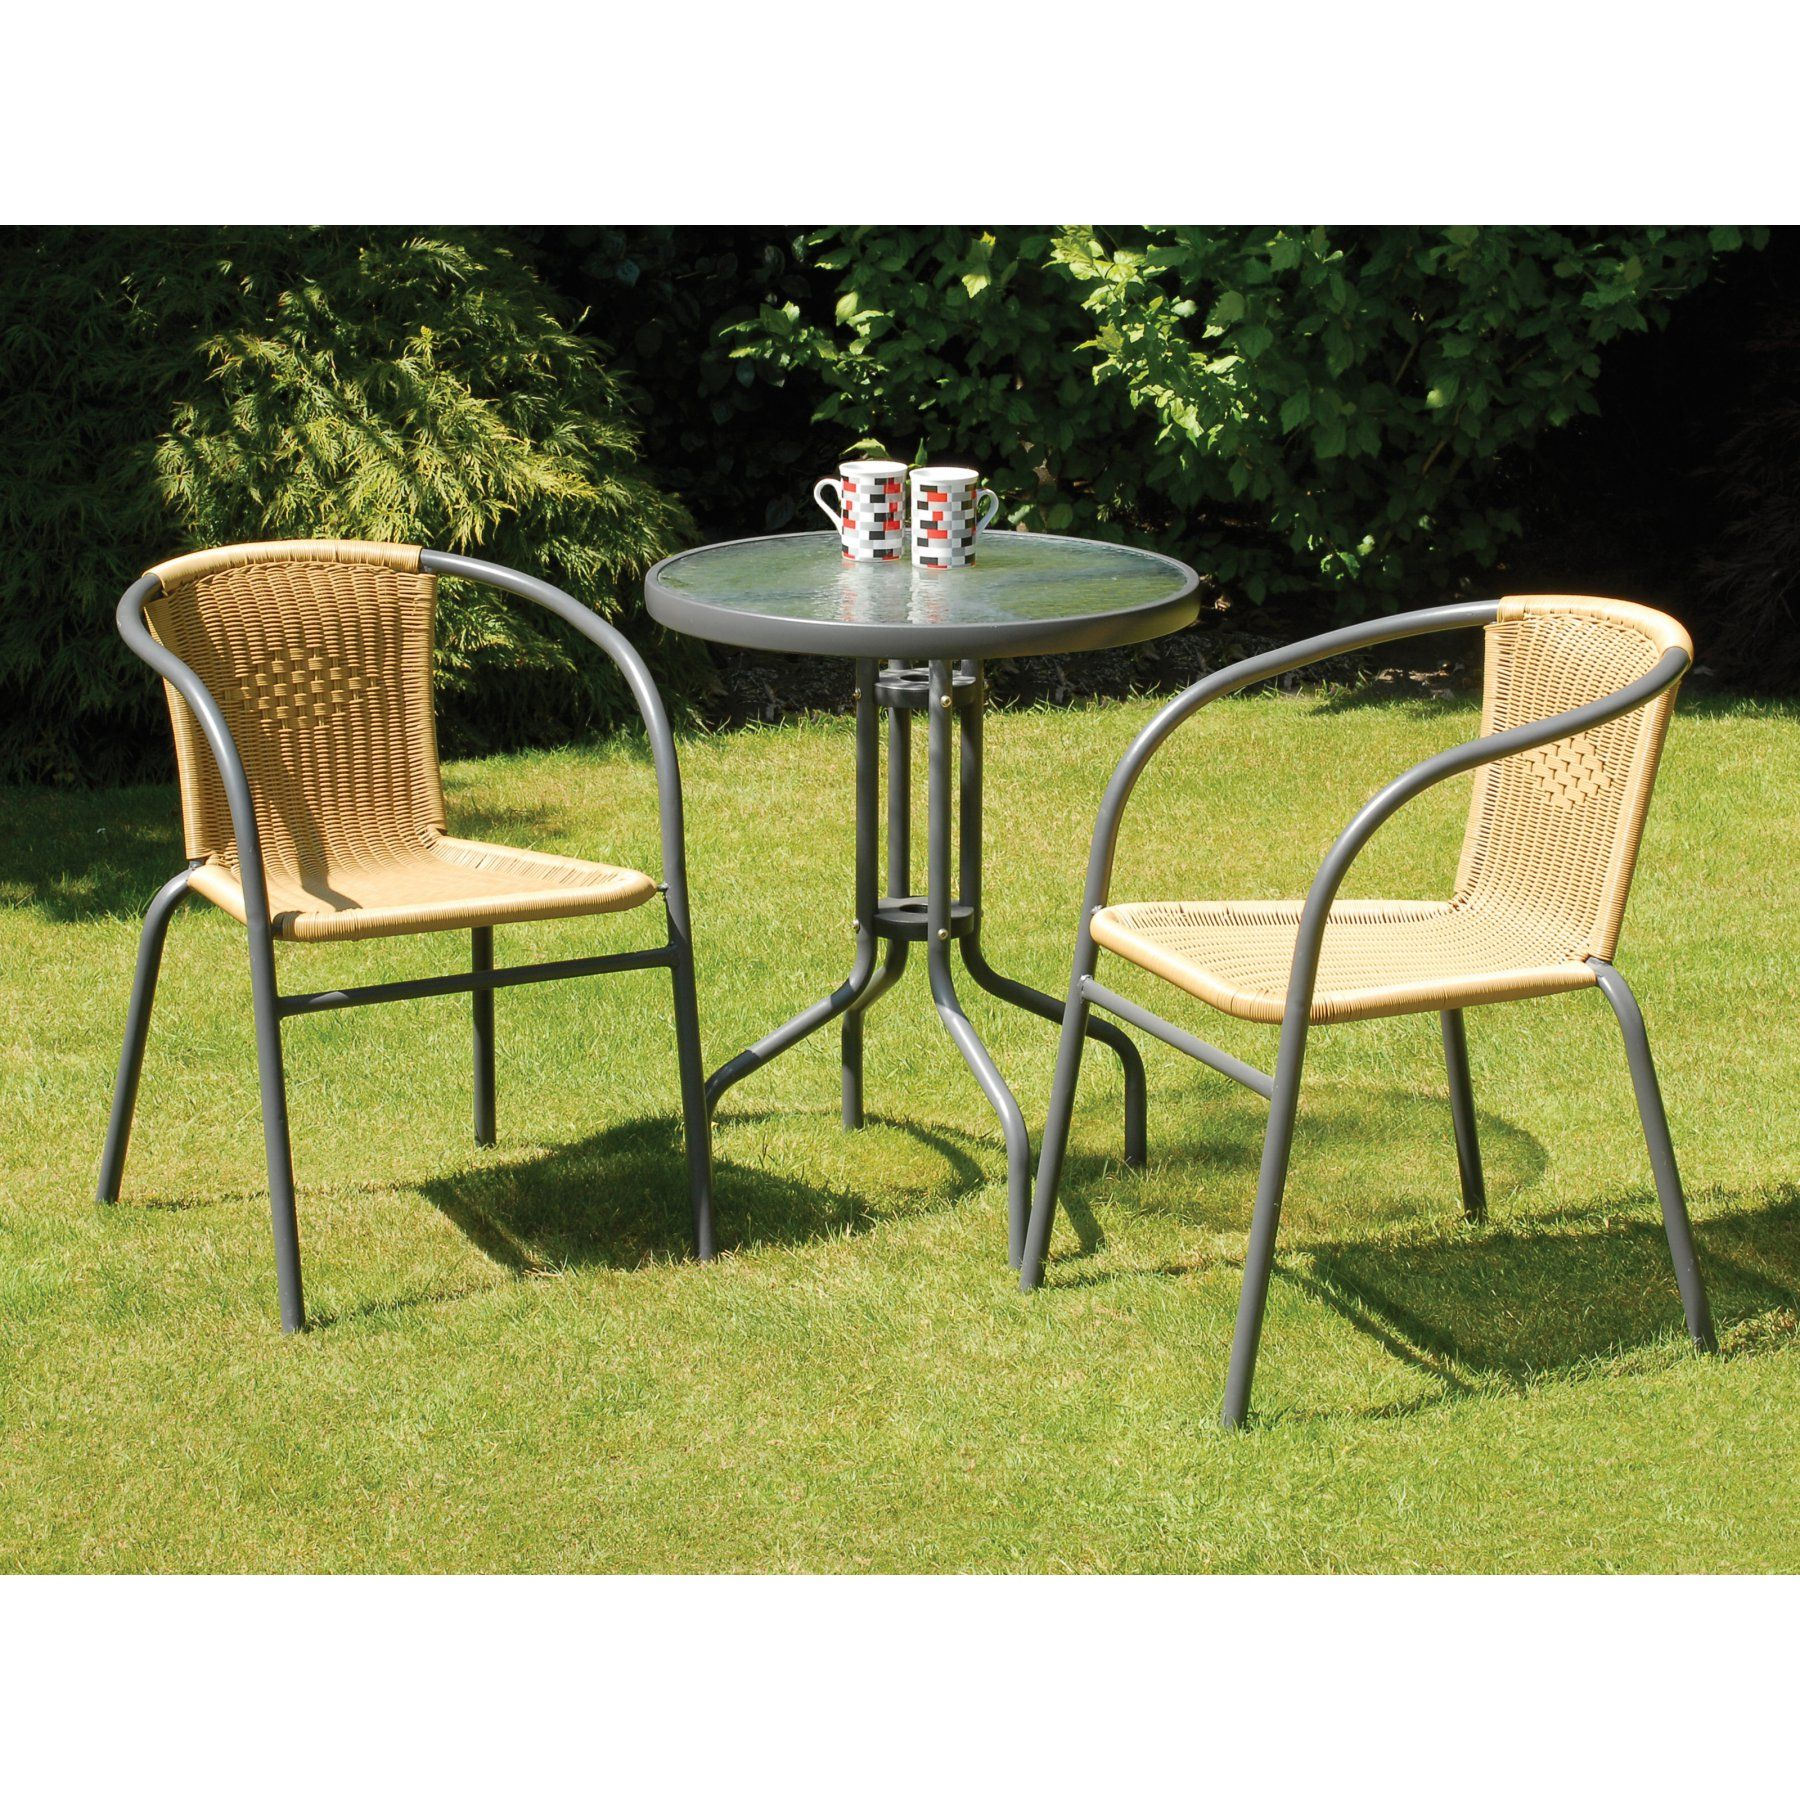 Transcontinental Outdoor Bambi Rattan and Steel Patio Bistro Set